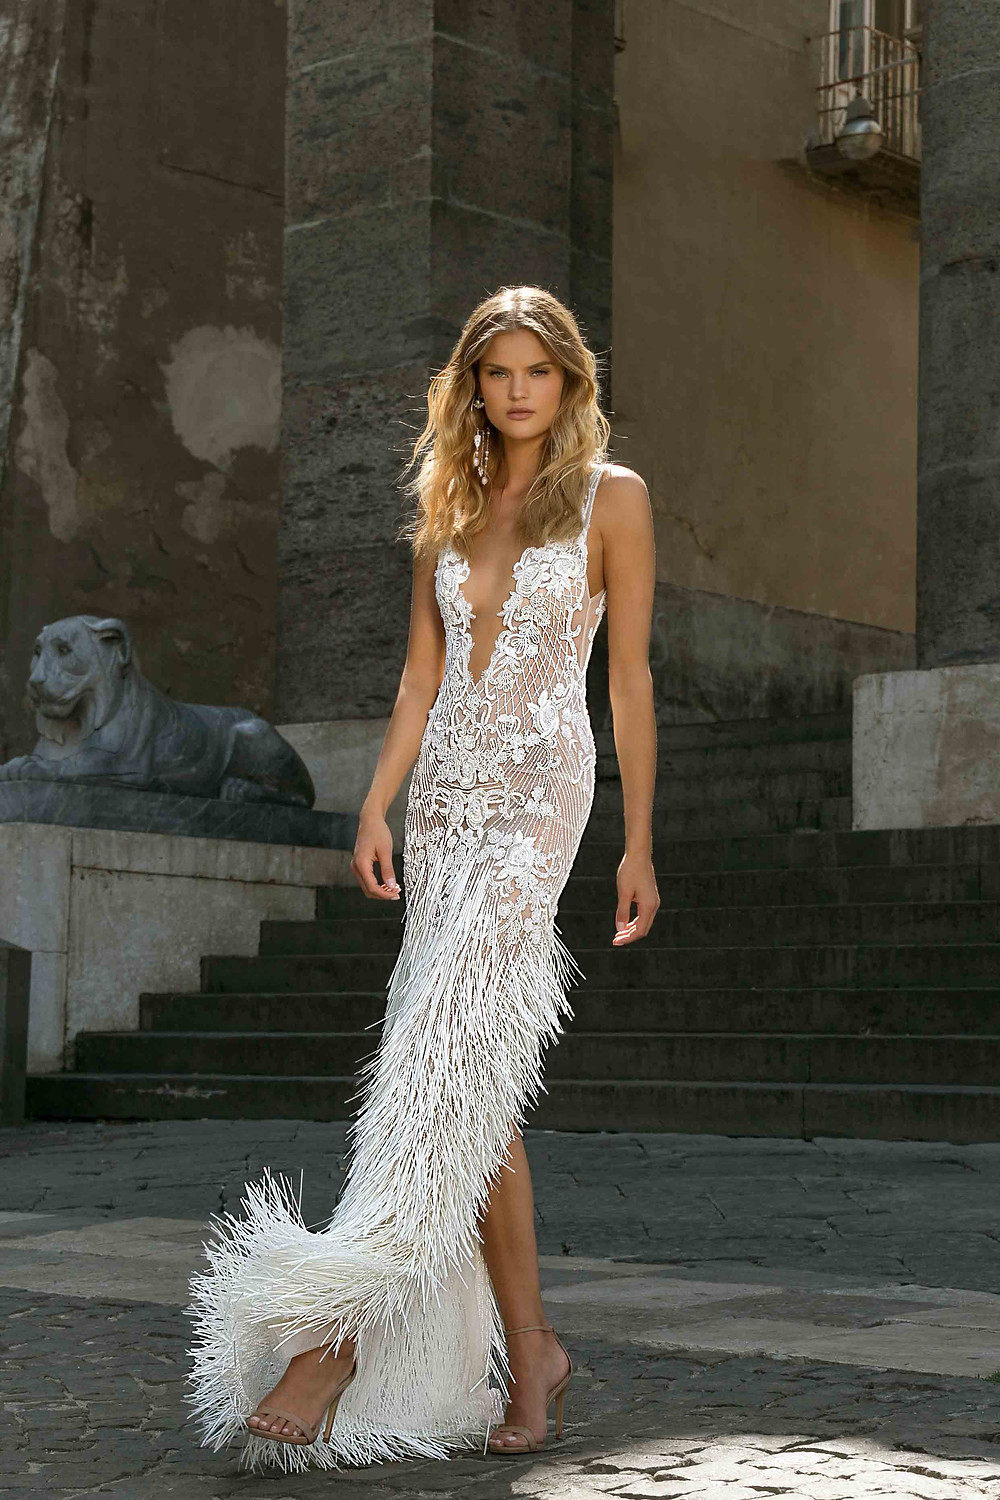 A sexy wedding dress with a high slit, lace, feathers, thin straps and a low v neckline